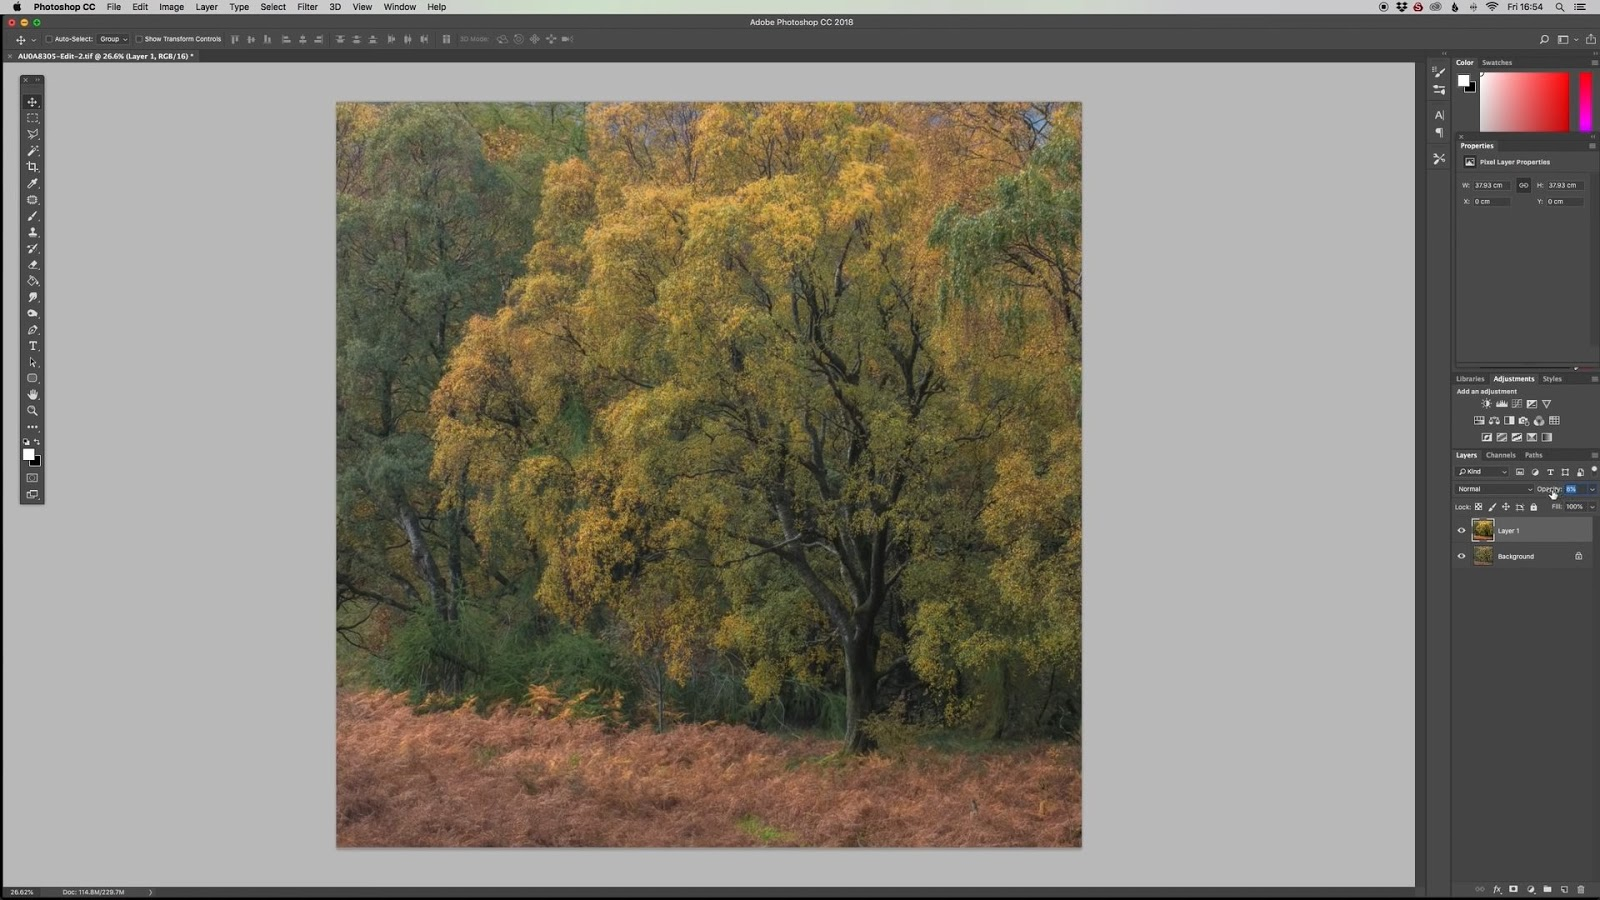 Try This Photoshop Technique With Your Woodland Images